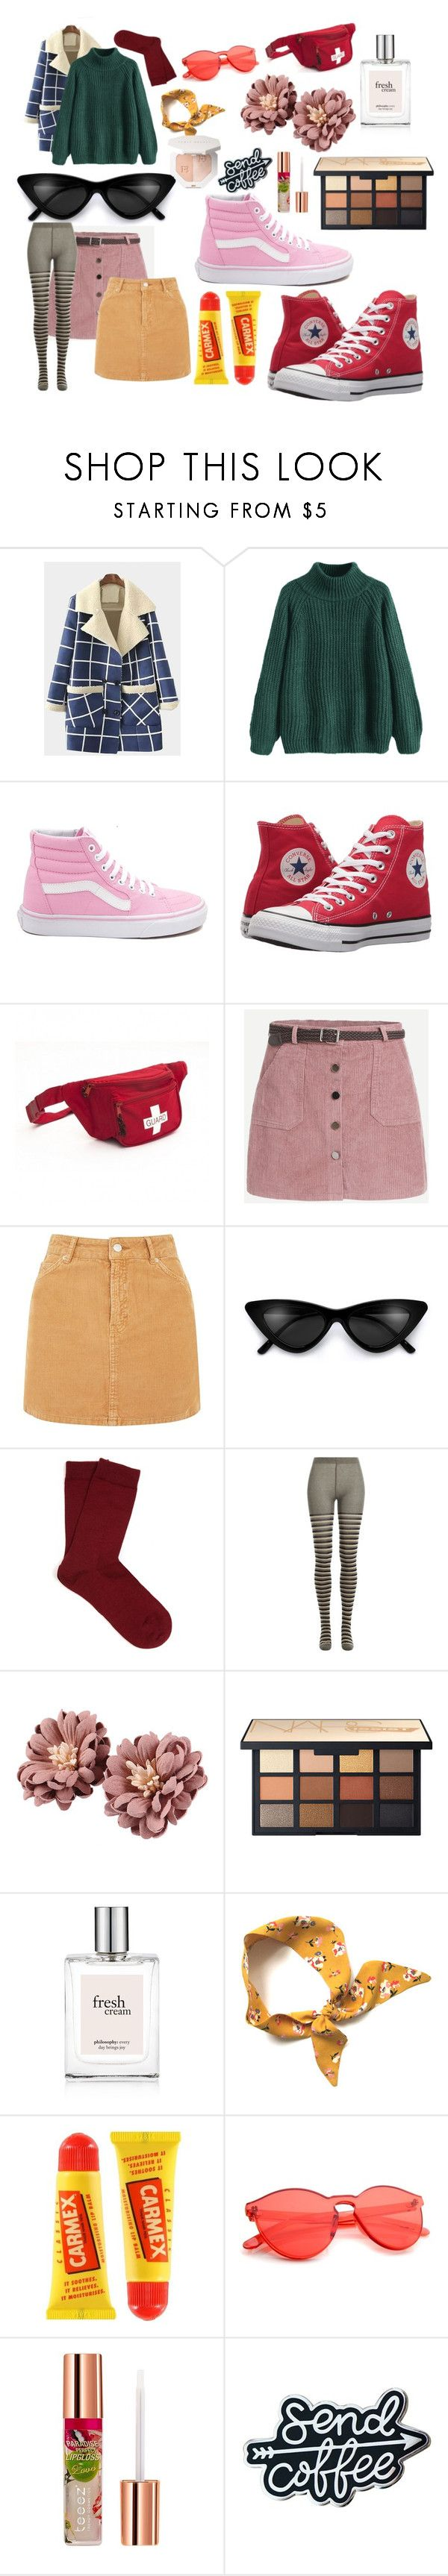 """okay, picture this: it's 2019, all of the girls in your local Value Village™ wears this exact outfit. everyone is happy and smiling. you are content."" by emmatheriot ❤ liked on Polyvore featuring Vans, Converse, Topshop, Falke, Sonia Rykiel, Carmex and Teeez"